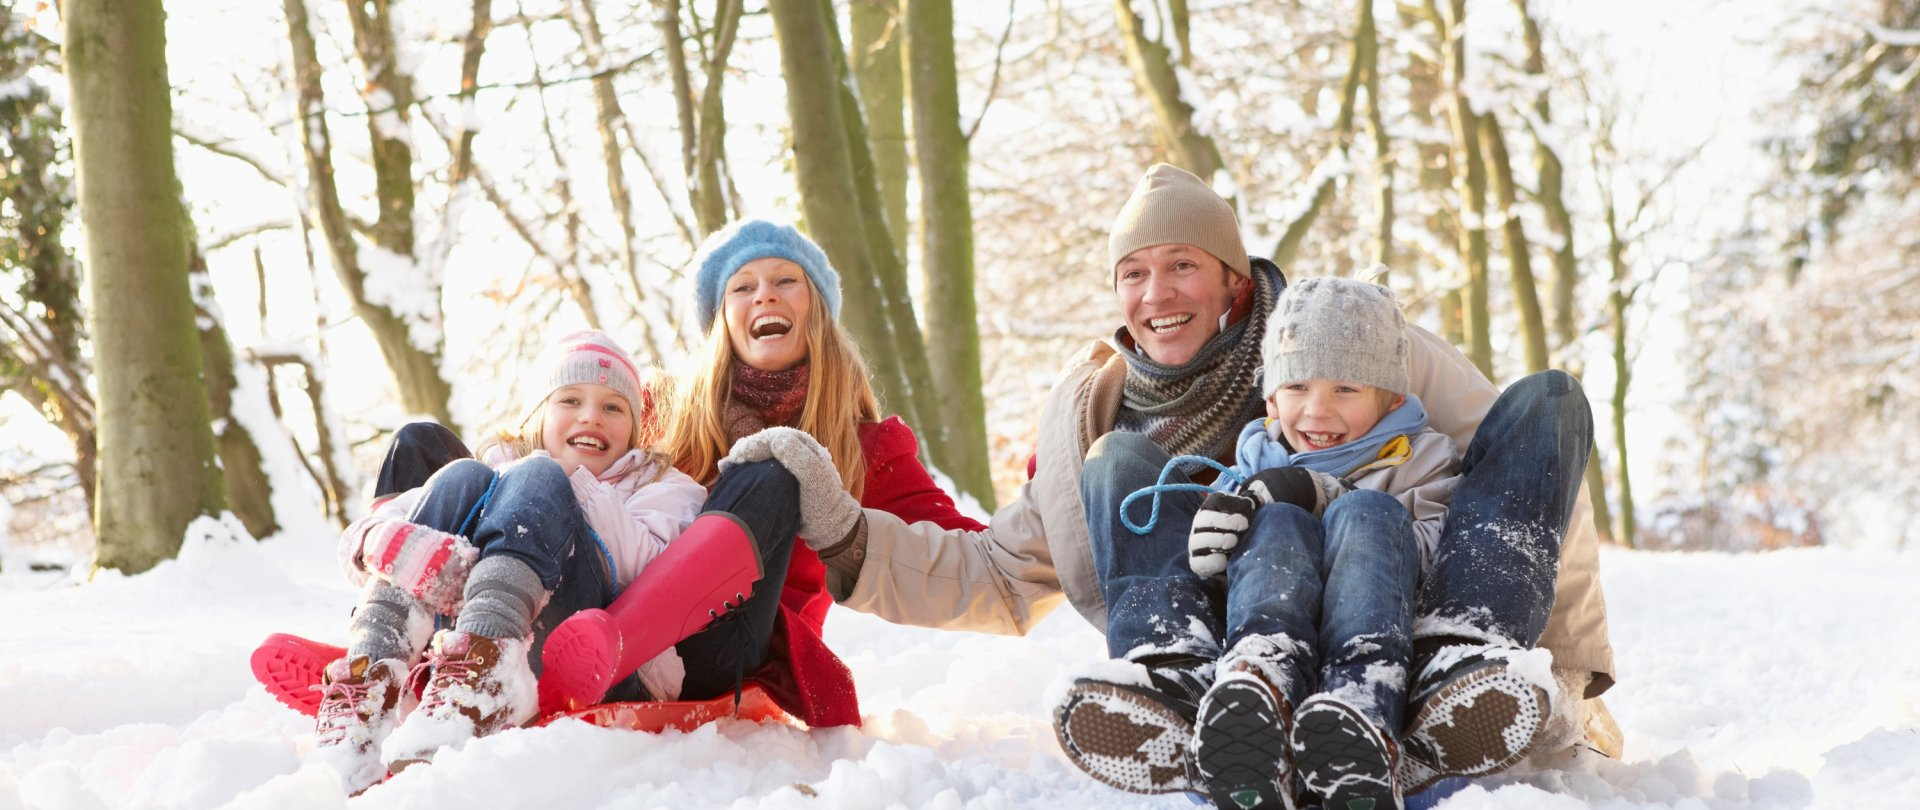 Active winter holidays with a variety of attractions